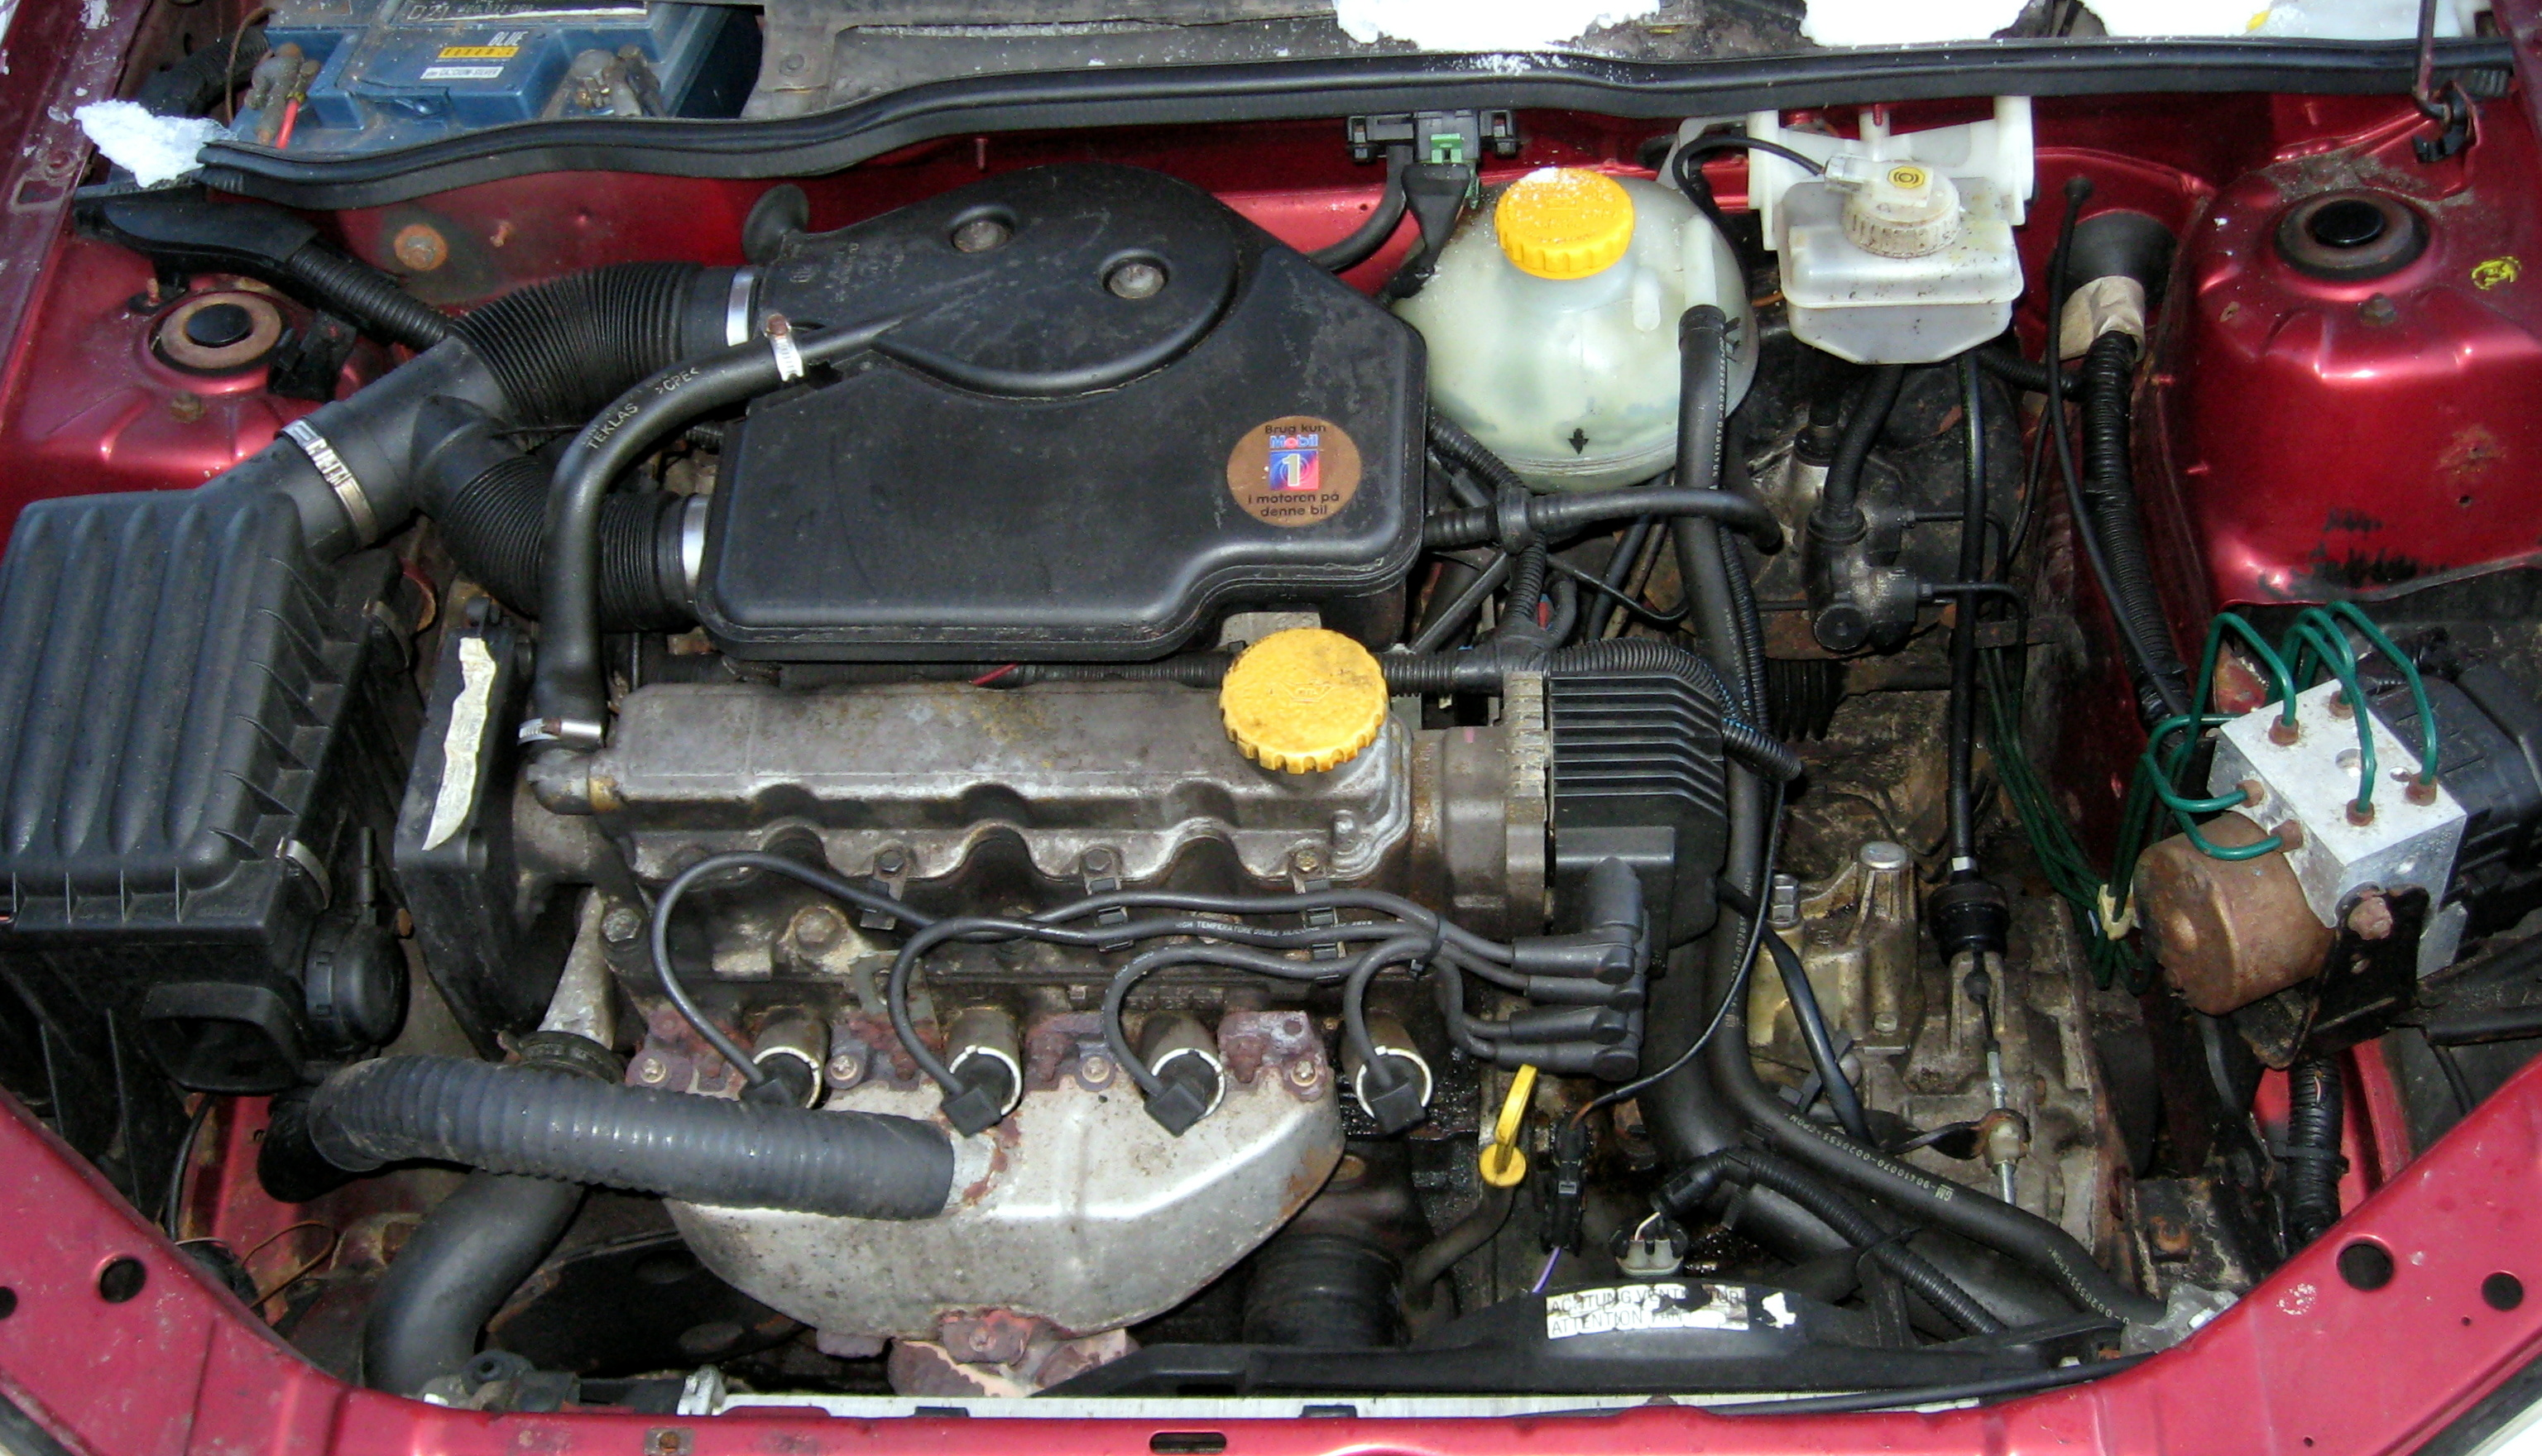 Replacement Engine For Kawasaki Fed Ds